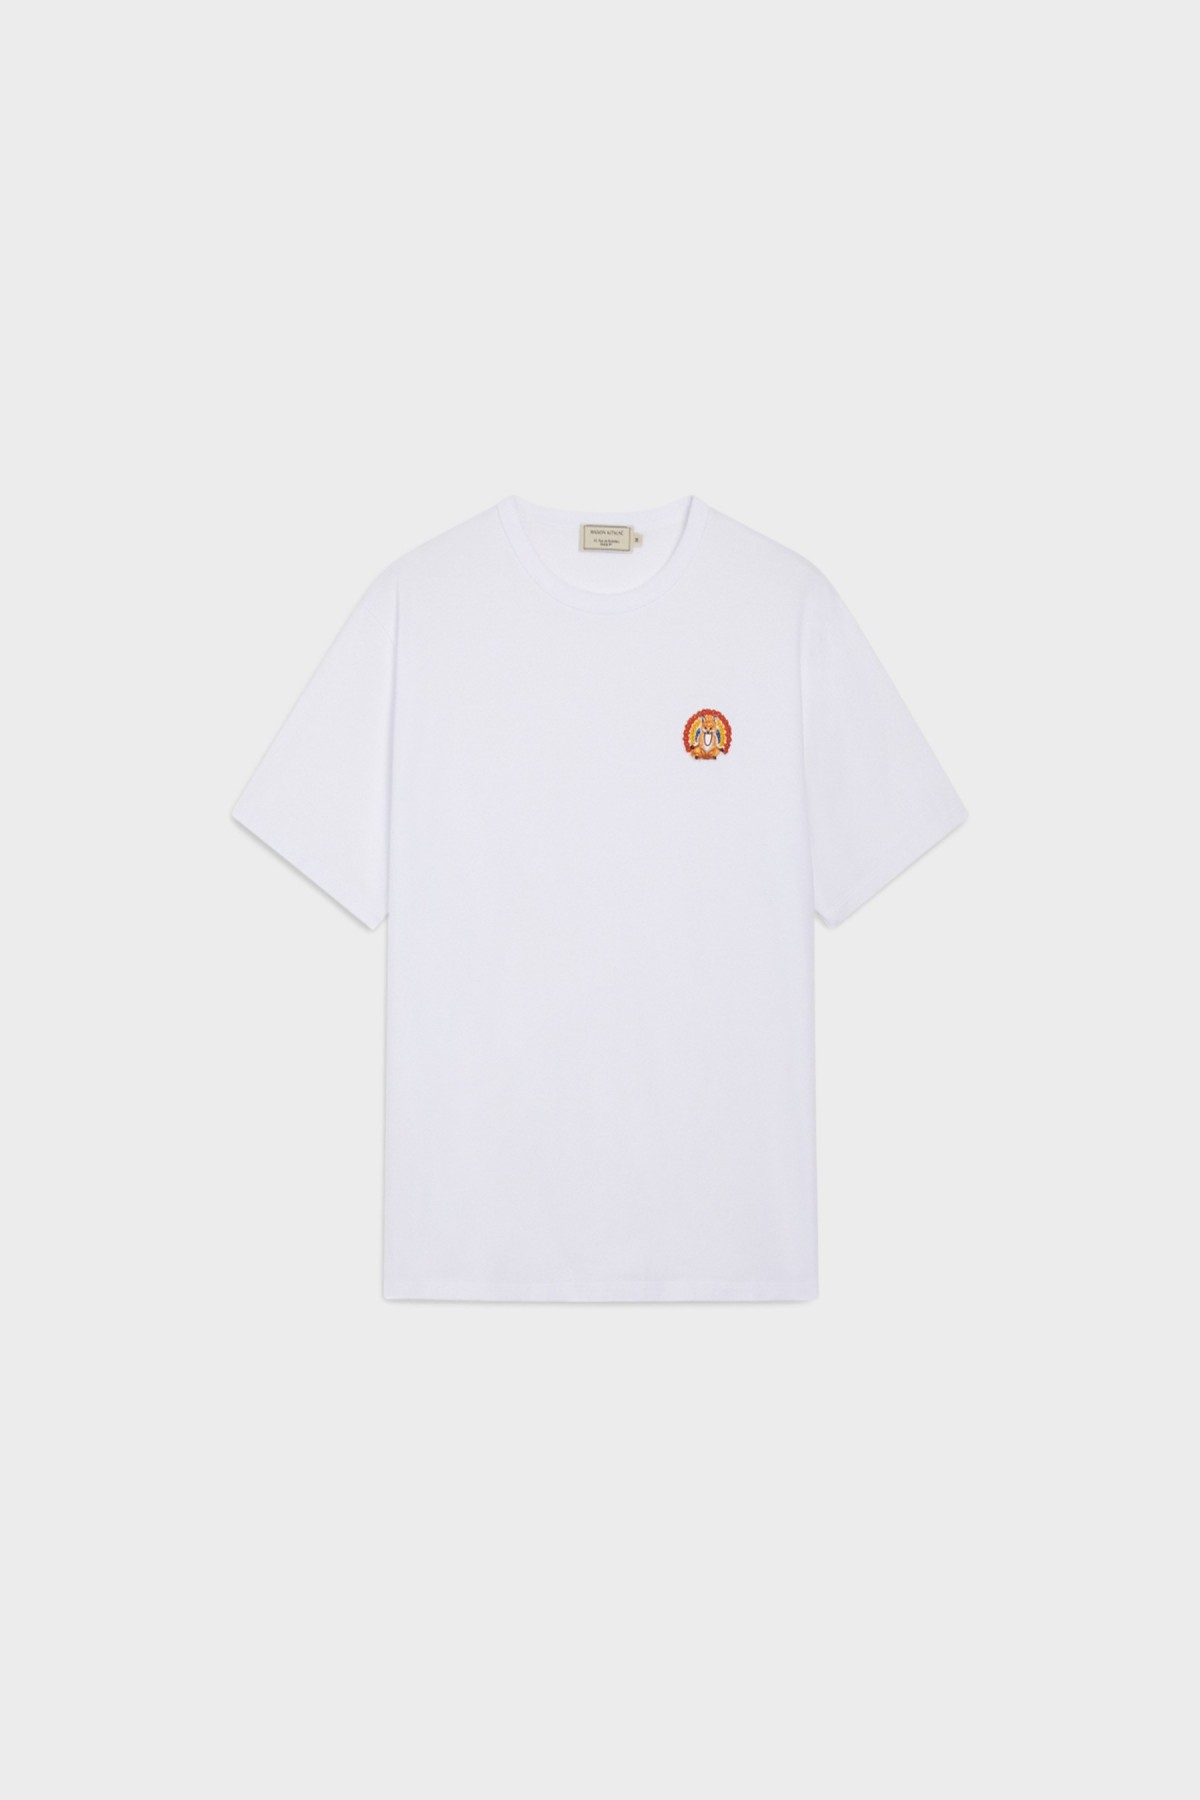 Maison Kitsuné Tee Shirt Patch Flower in White